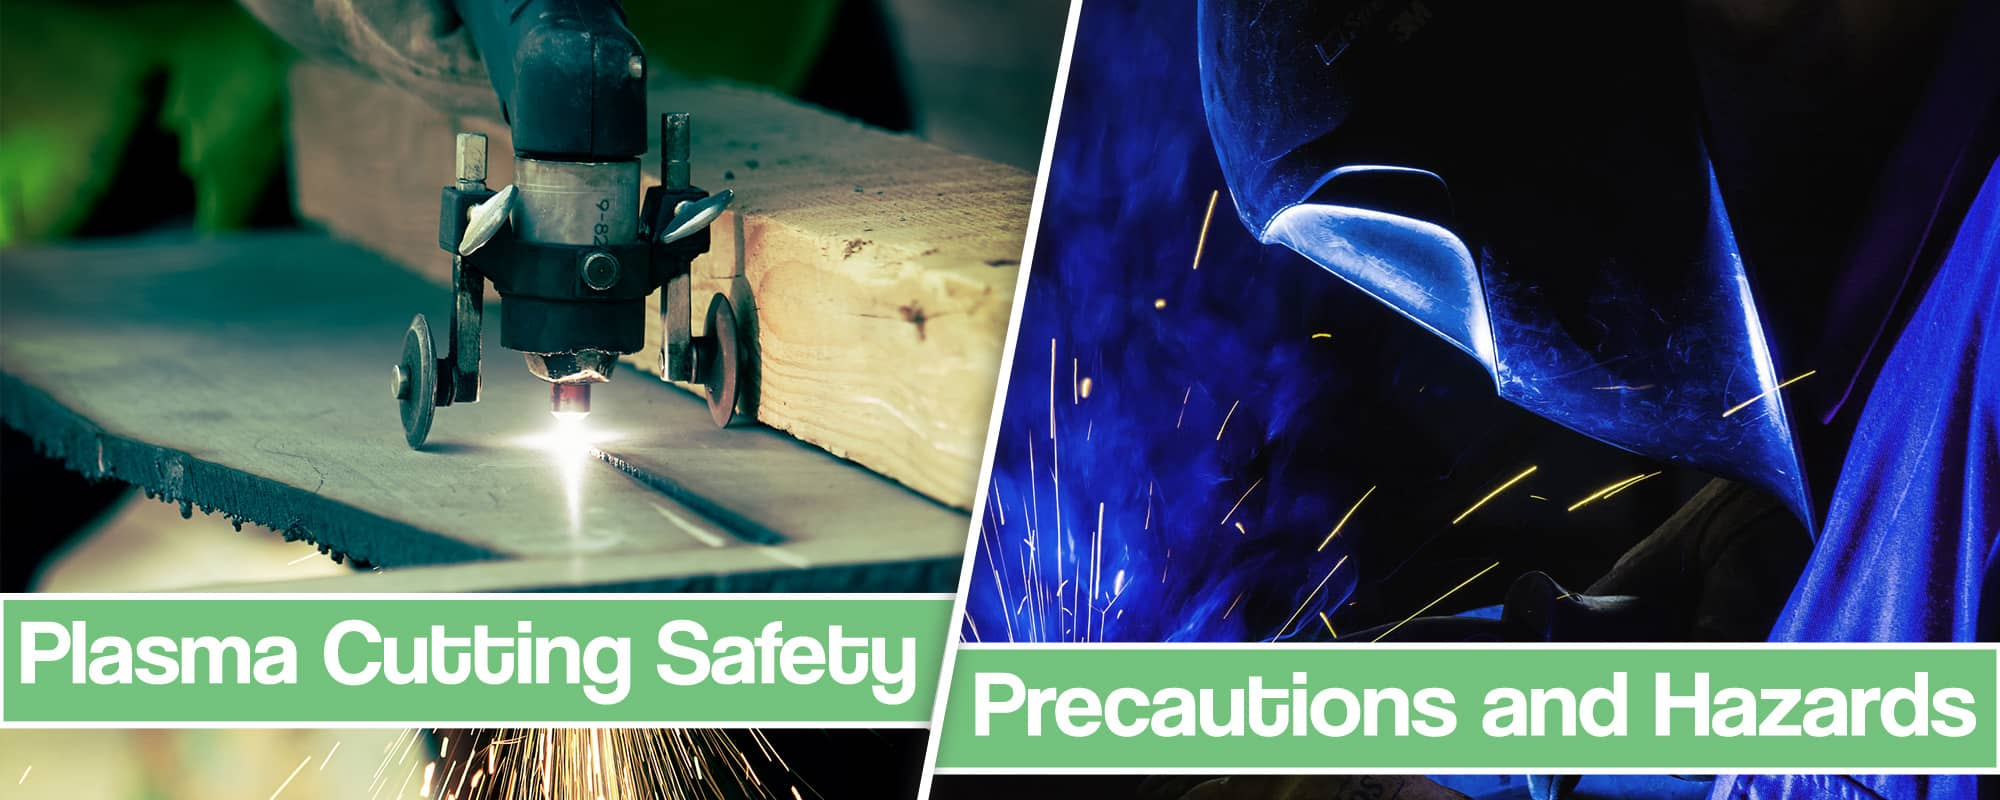 Feature image for Plasma cutting safety article